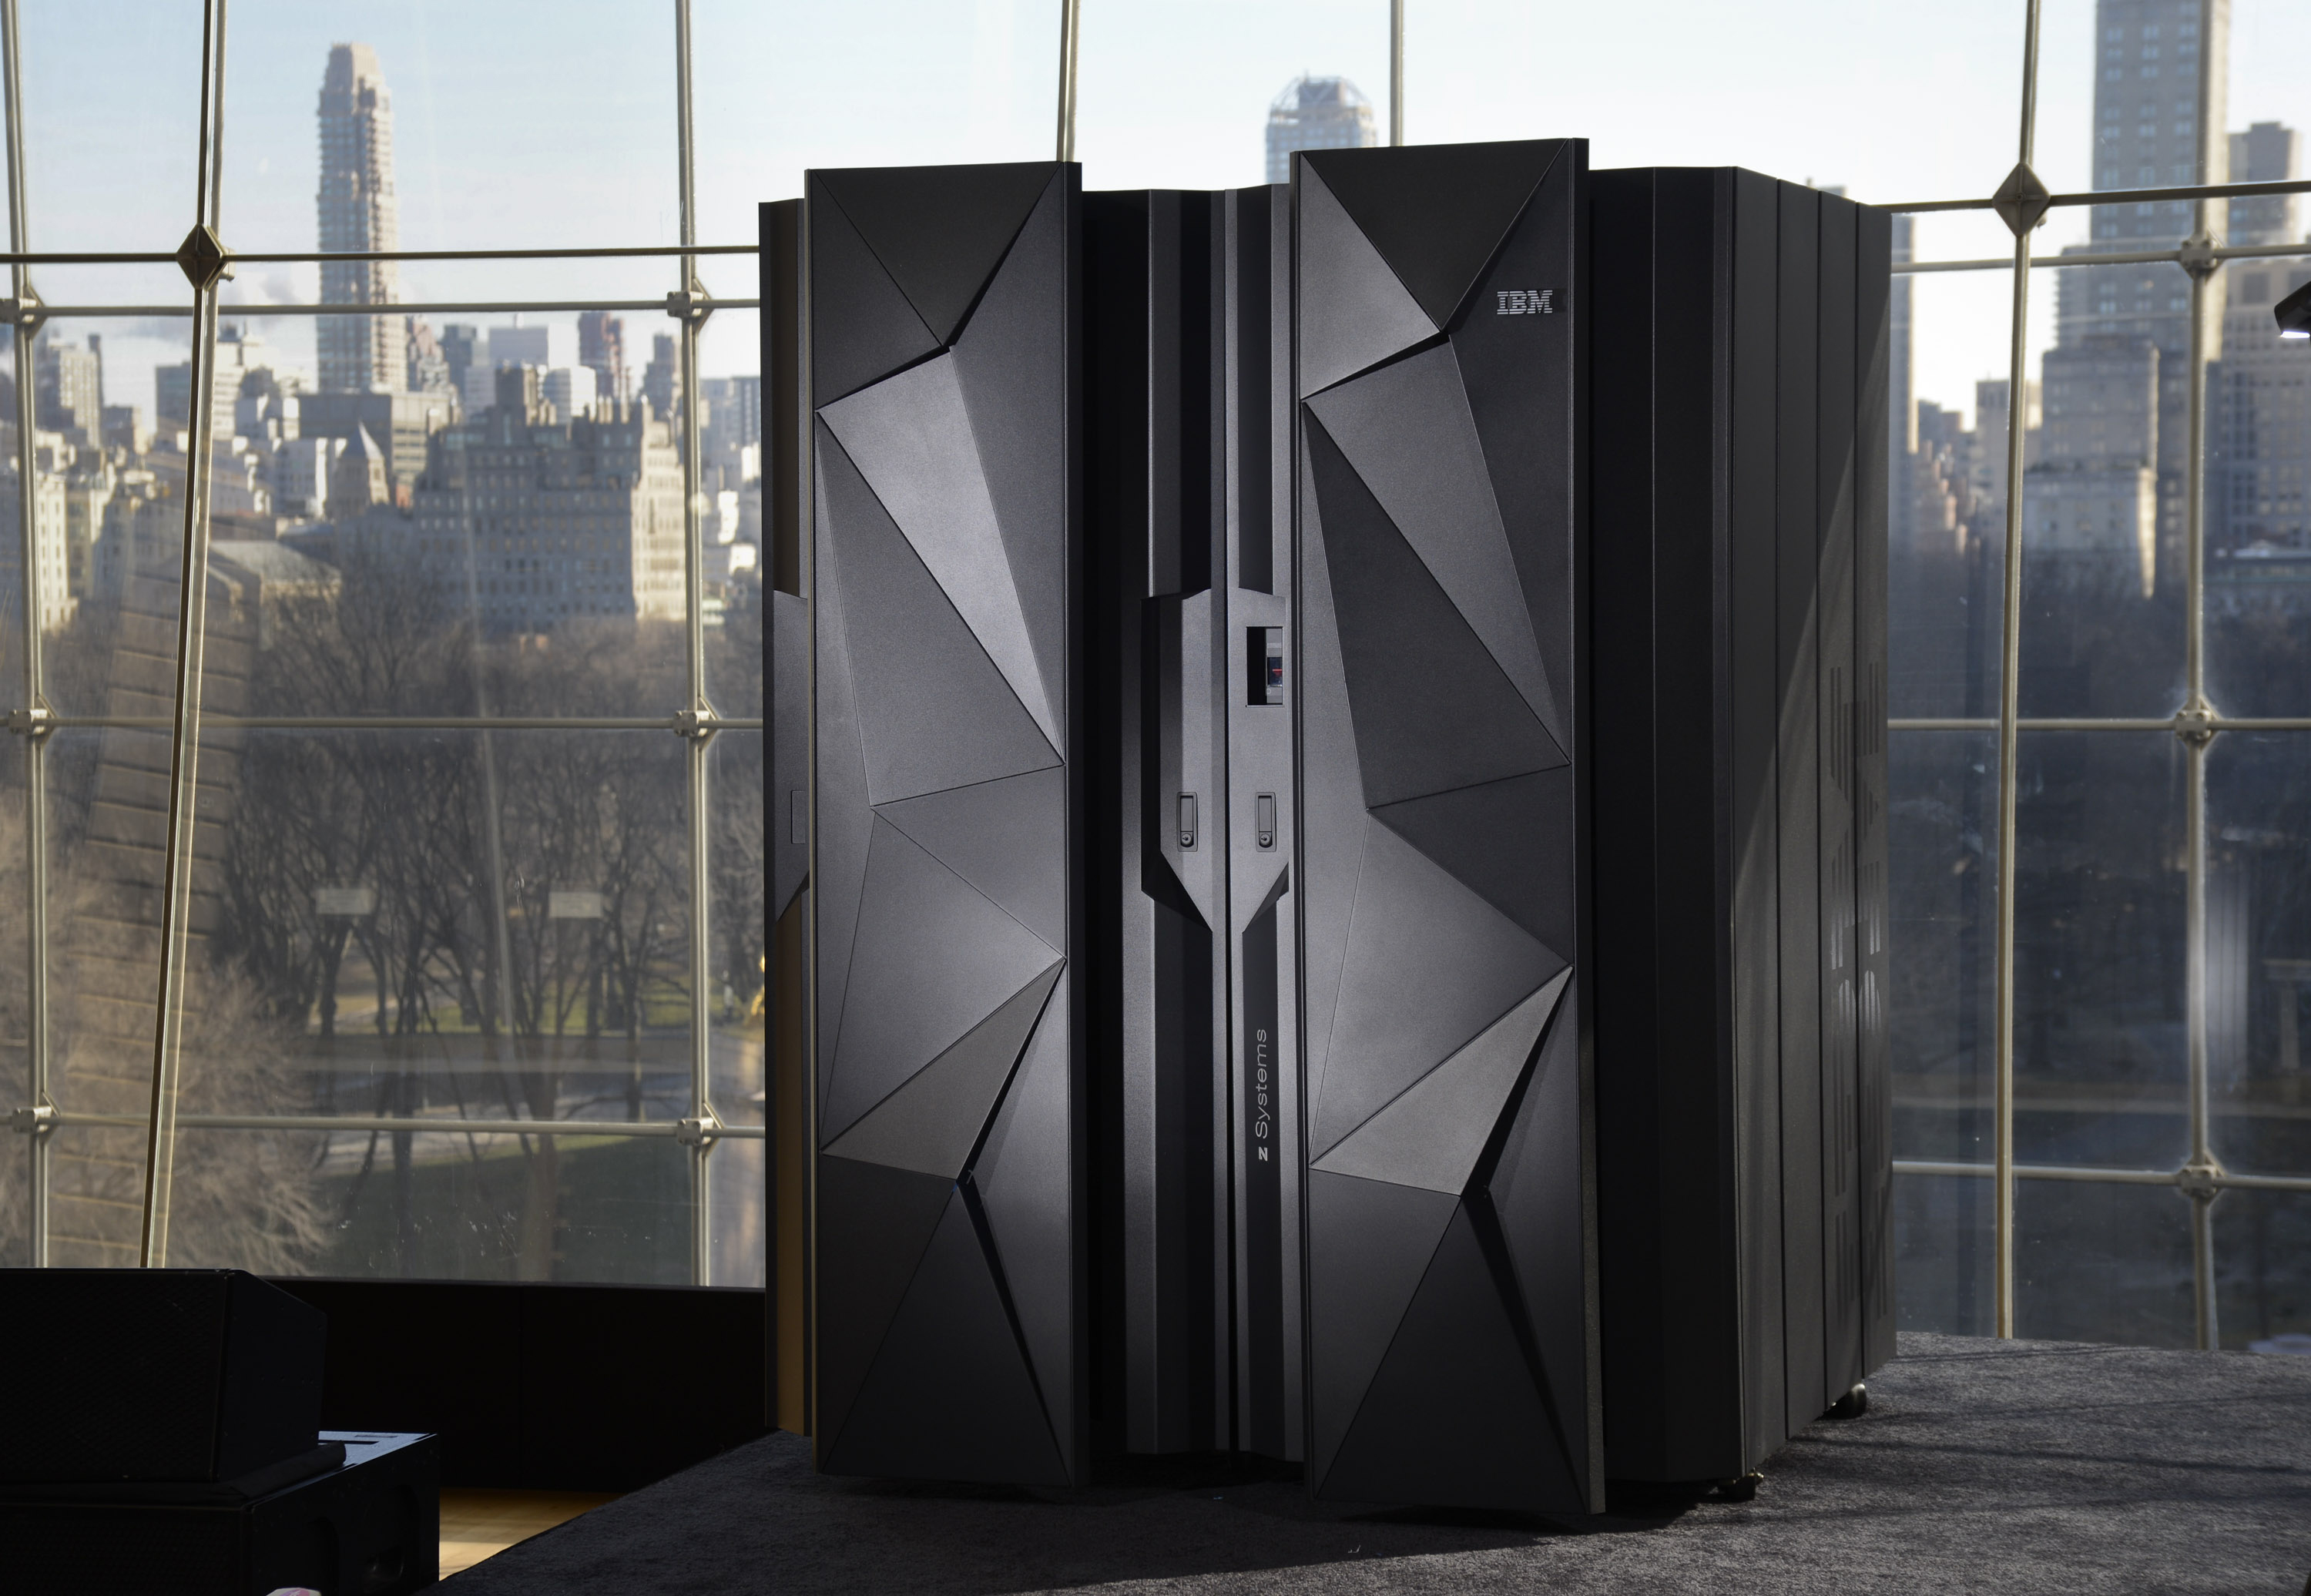 IBM Launches z13 Mainframe -- Most Powerful and Secure System Ever Built